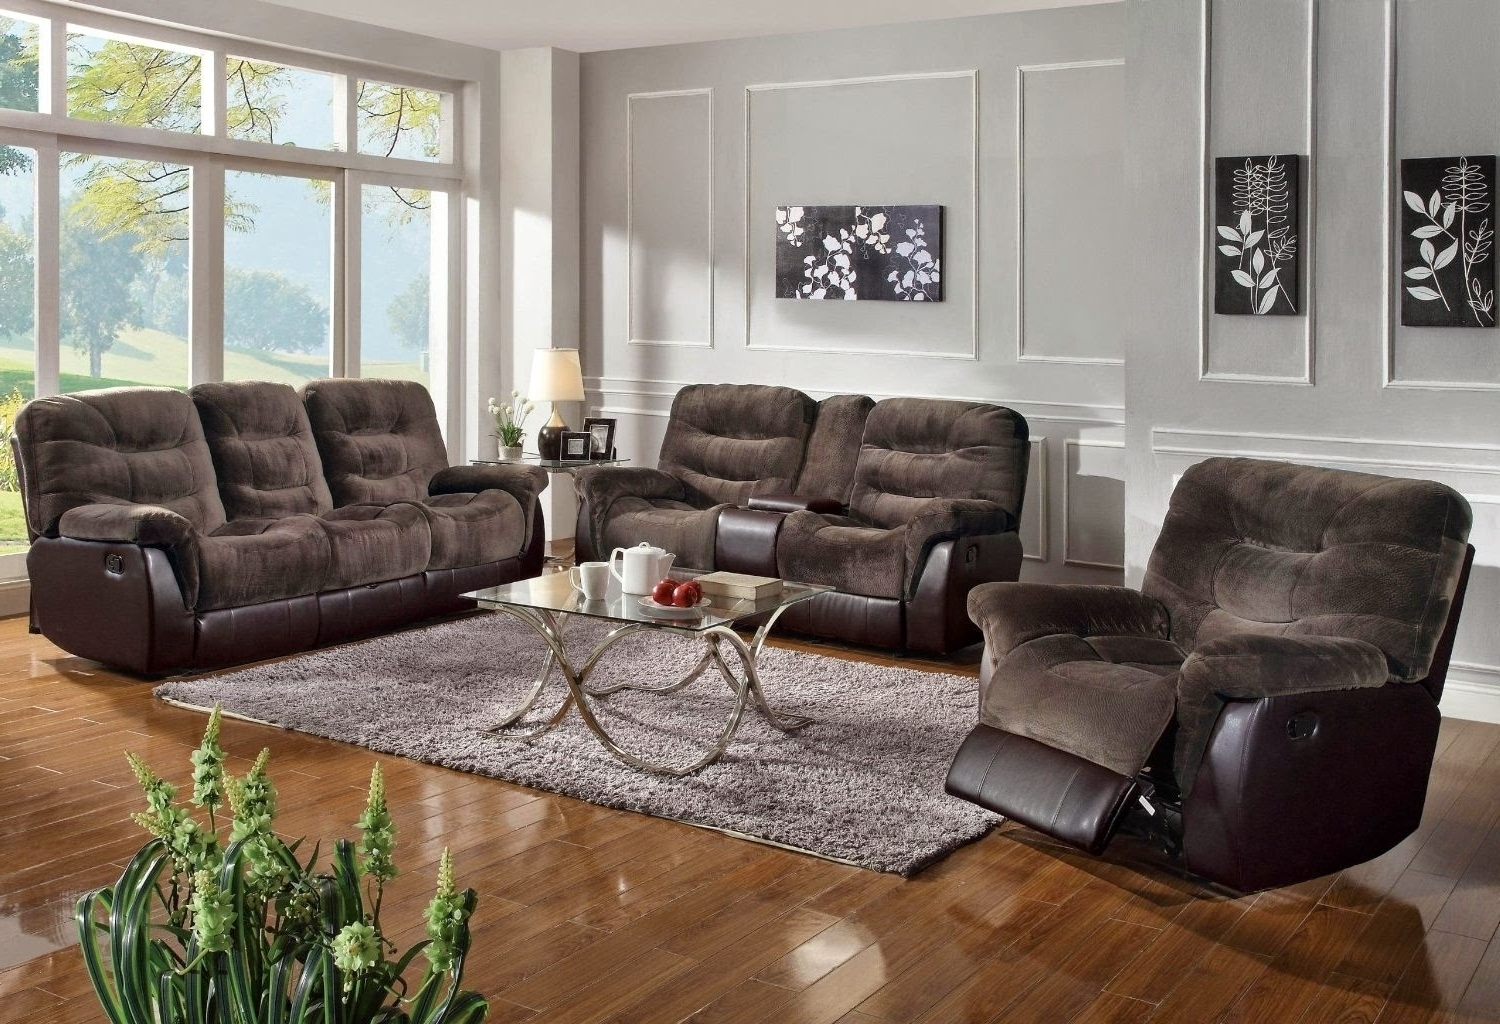 Most Popular Furniture Reclining Sectional Sofas For Small Spaces Reclining With Regard To Sectional Sofas For Small Spaces (View 9 of 20)